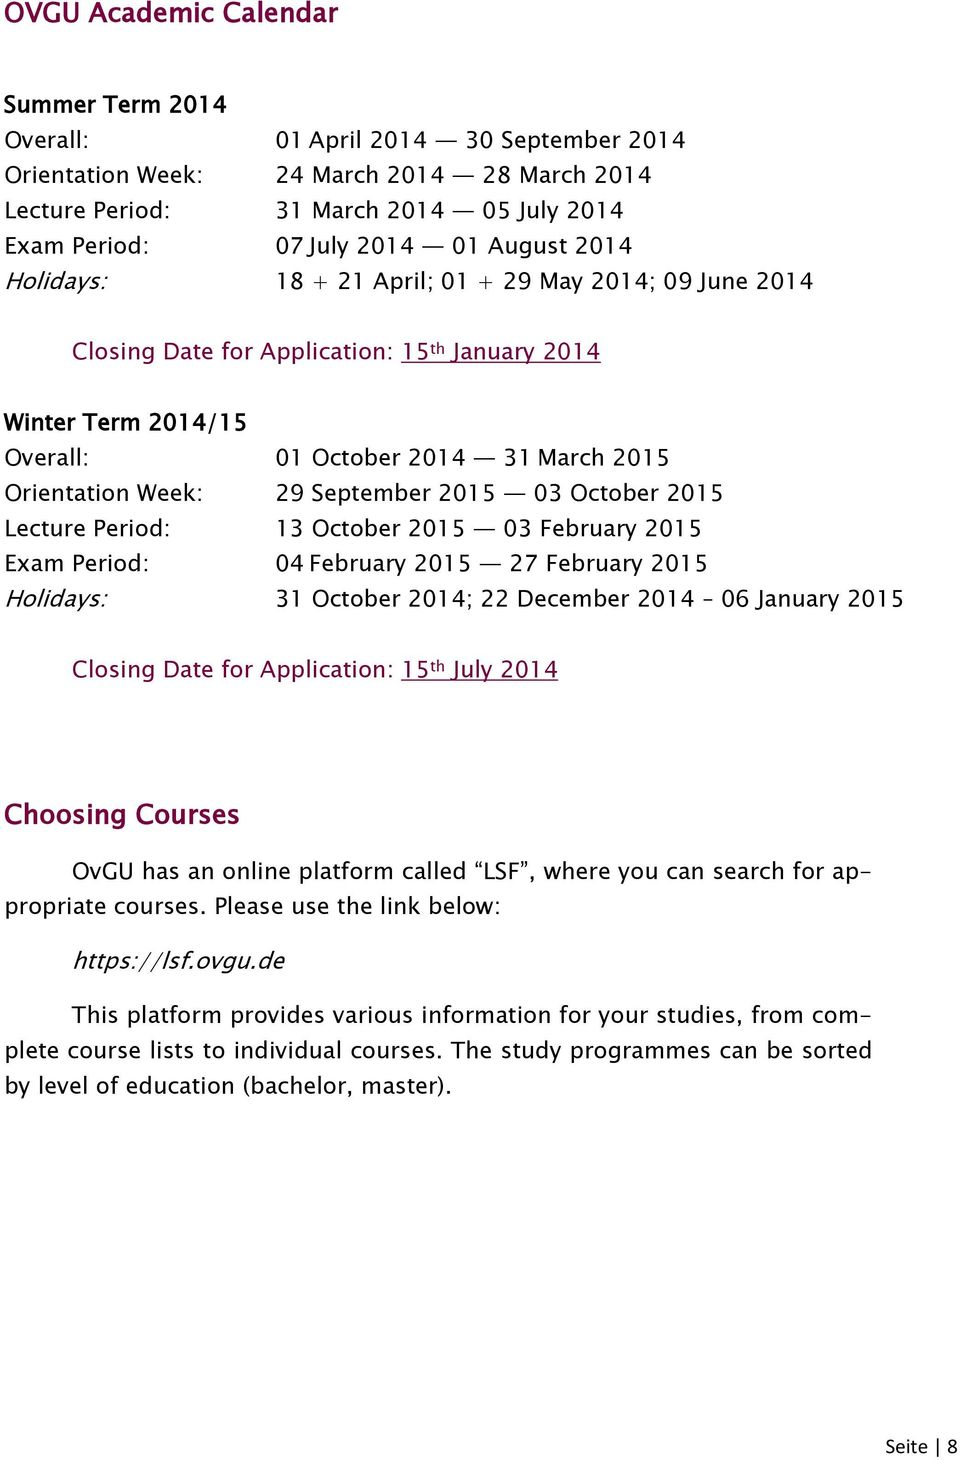 September 2015 03 October 2015 Lecture Period: 13 October 2015 03 February 2015 Exam Period: 04 February 2015 27 February 2015 Holidays: 31 October 2014; 22 December 2014 06 January 2015 Closing Date